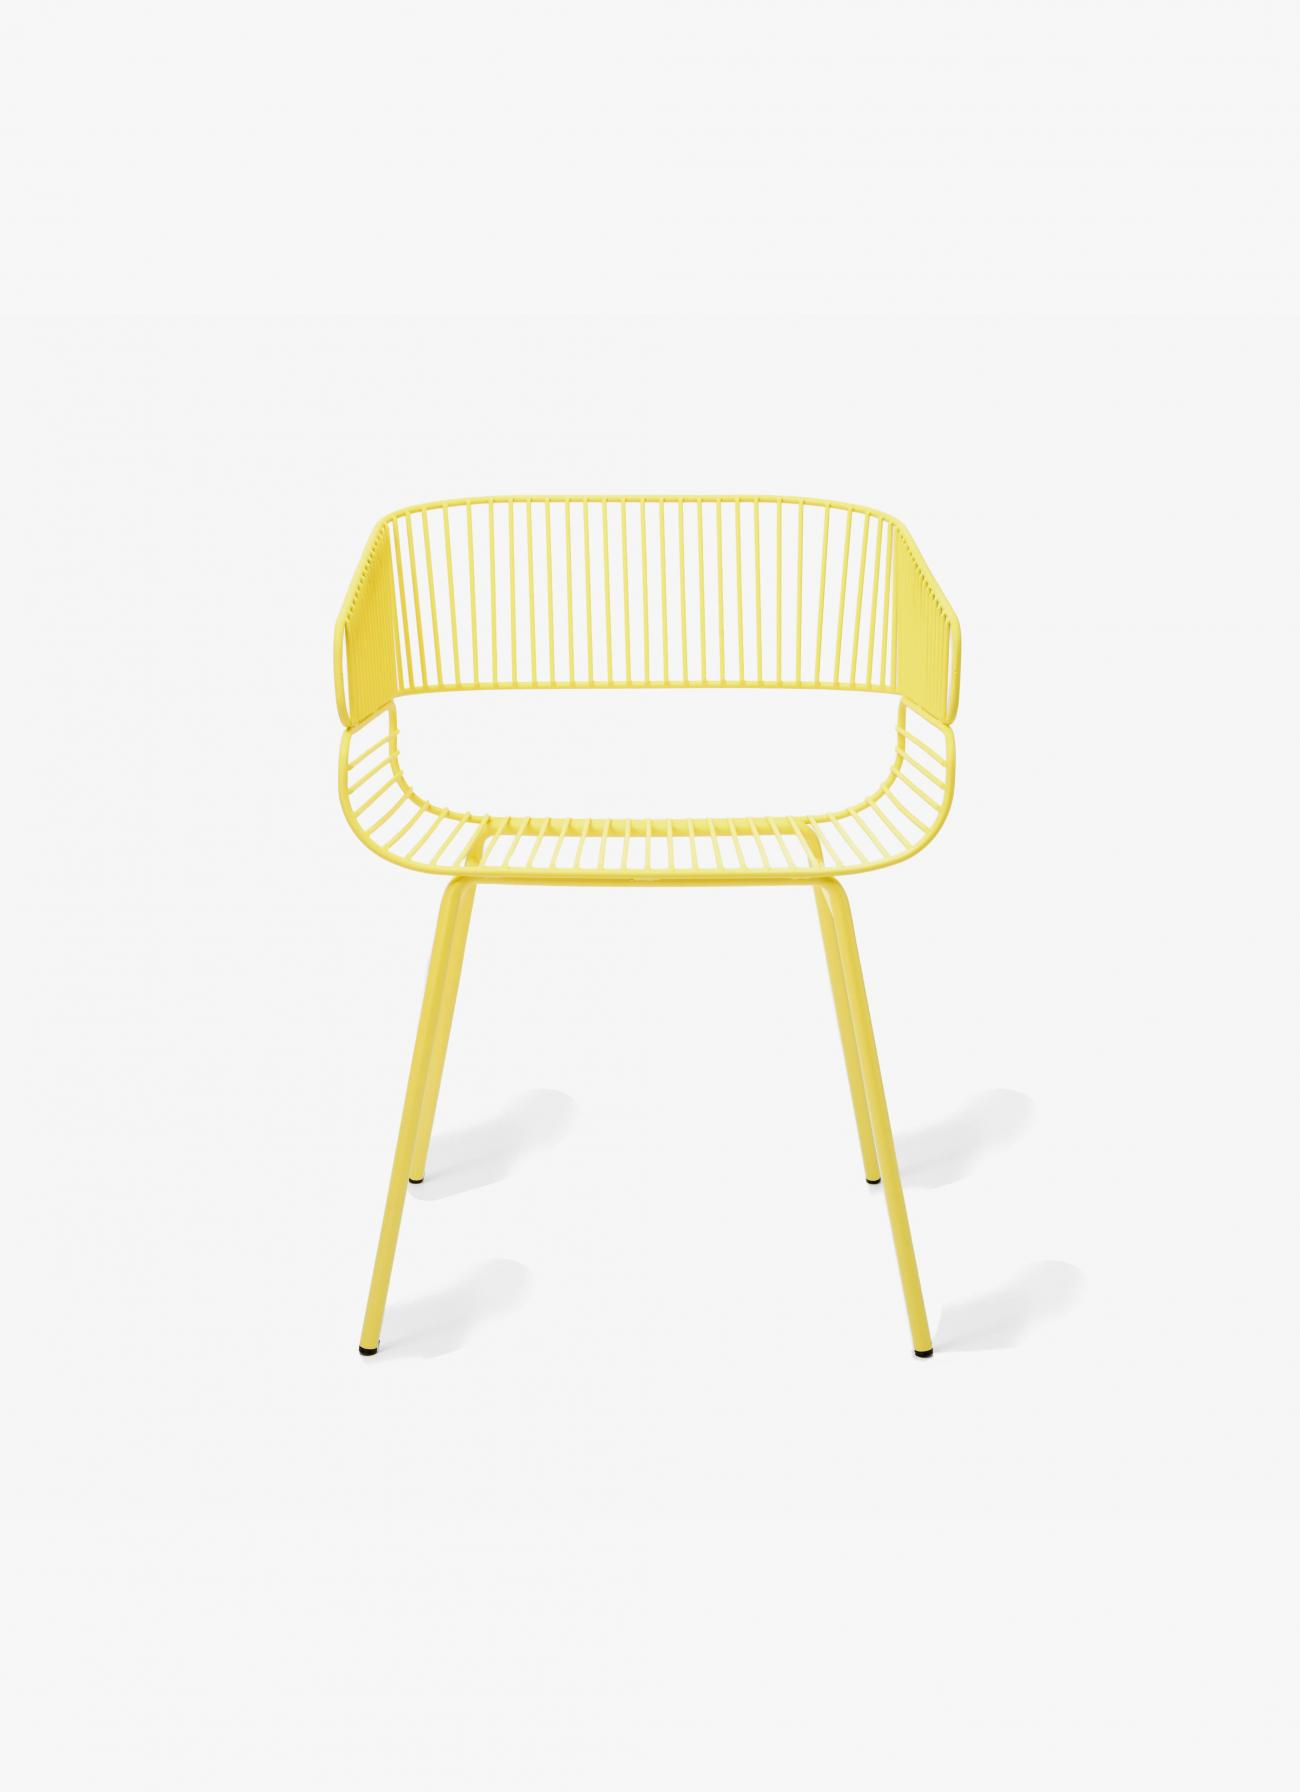 Petite Friture - Trame Chair - yellow